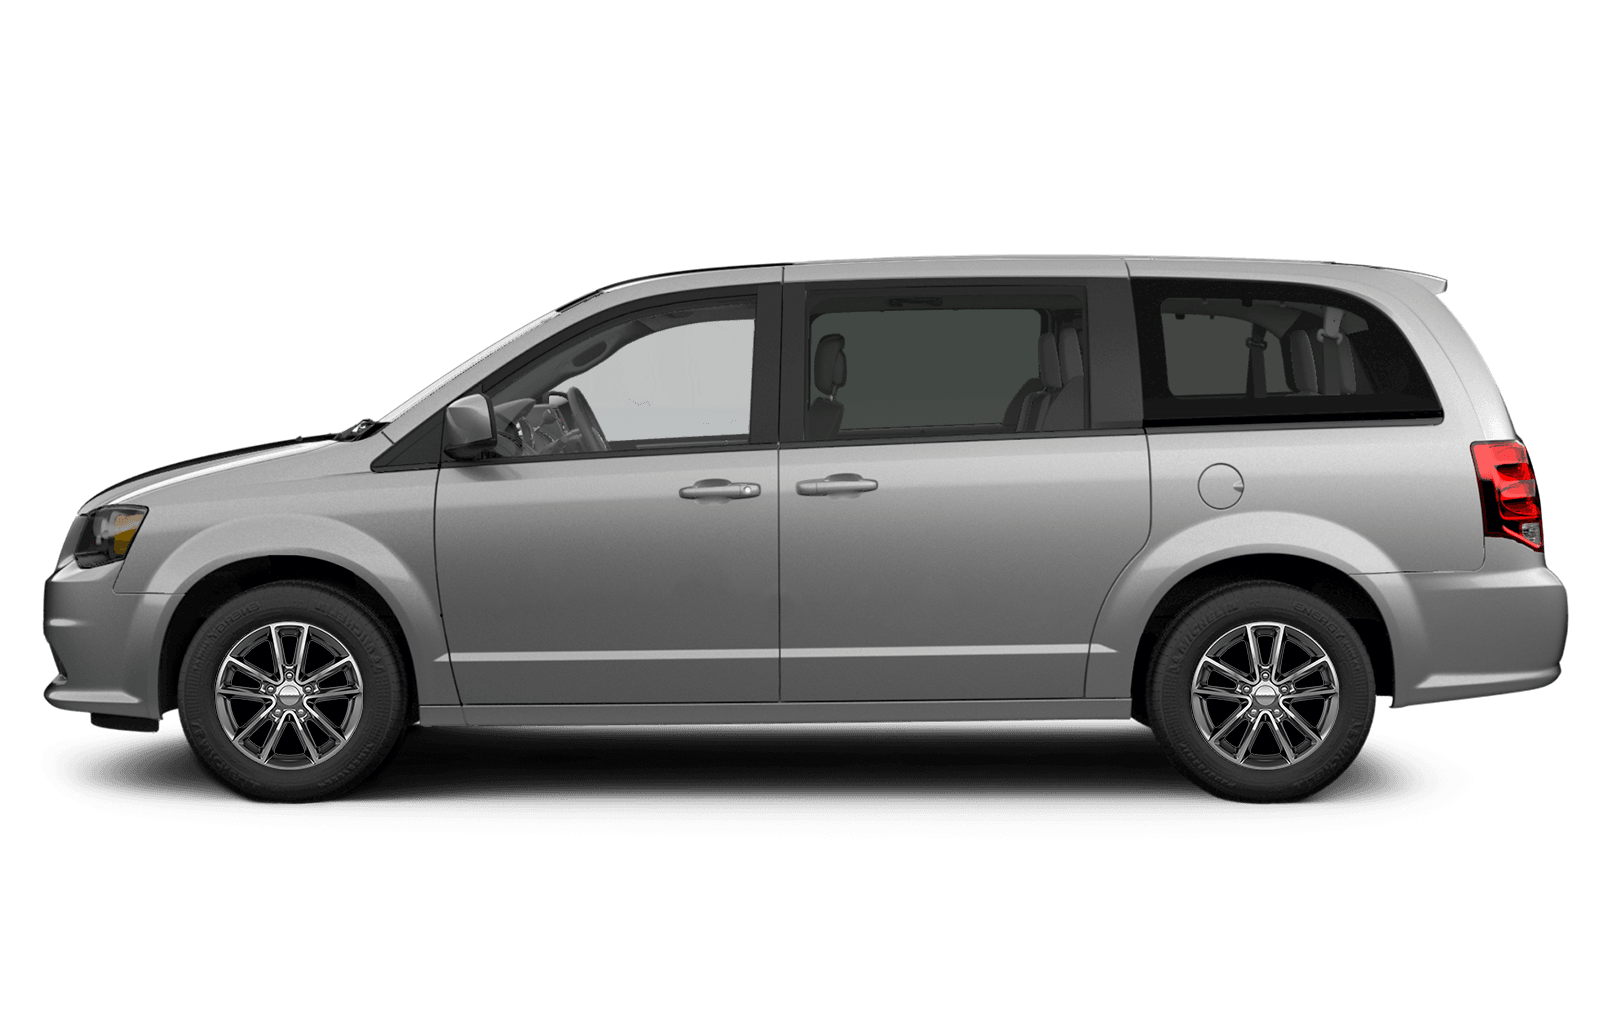 67 Great 2020 Dodge Grand Caravan Gt Configurations by 2020 Dodge Grand Caravan Gt